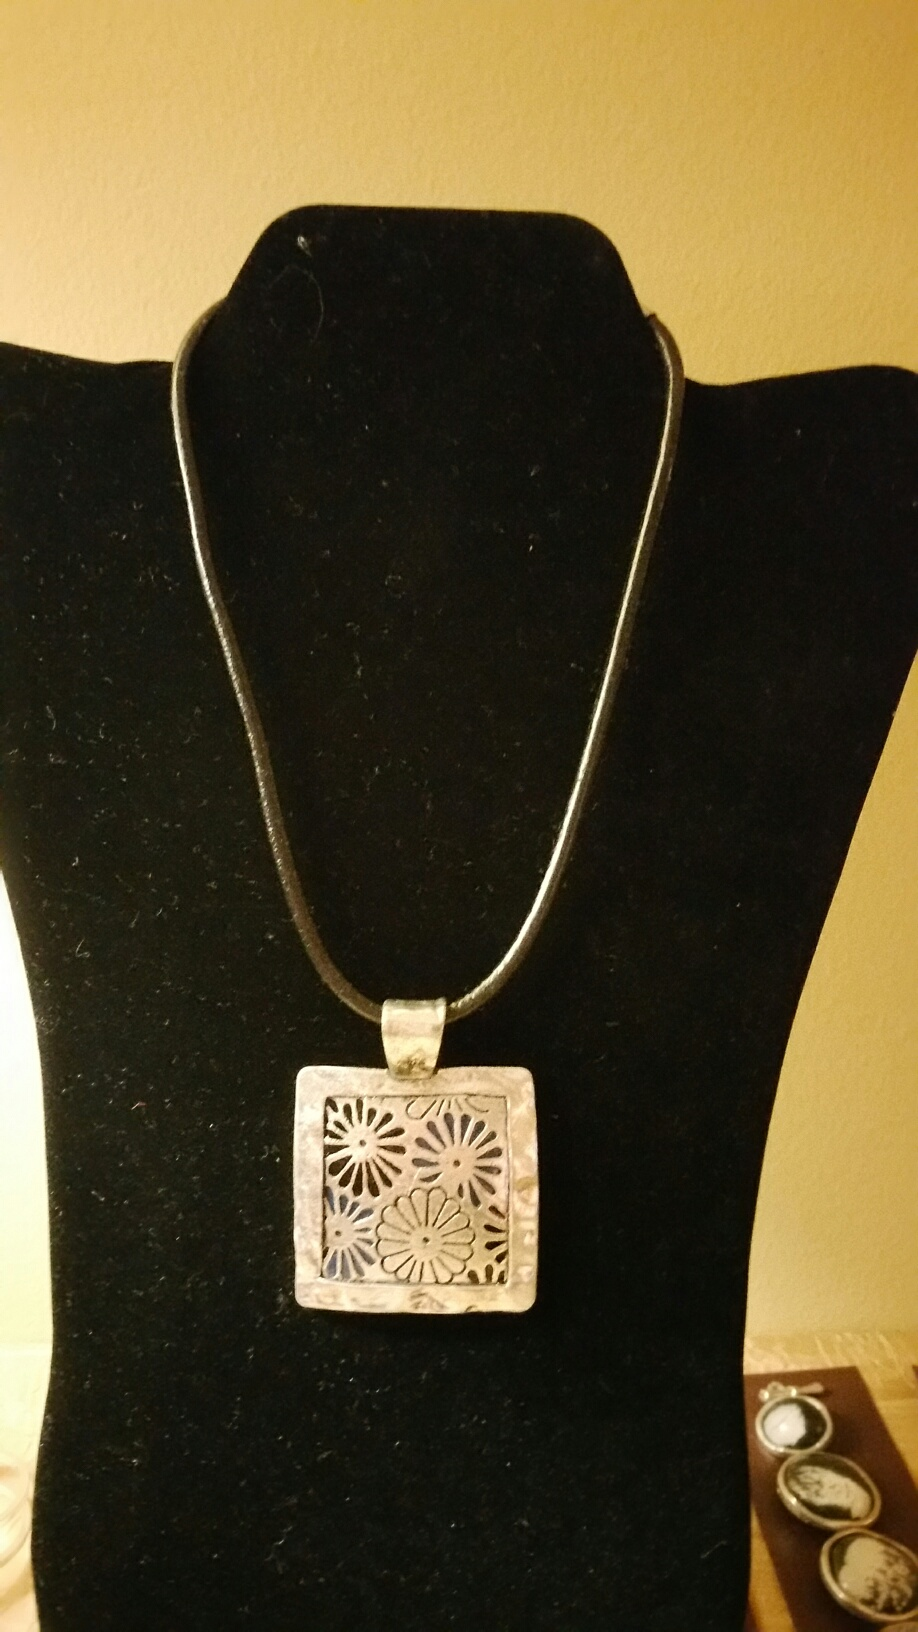 Square Florwers Necklace 1N60